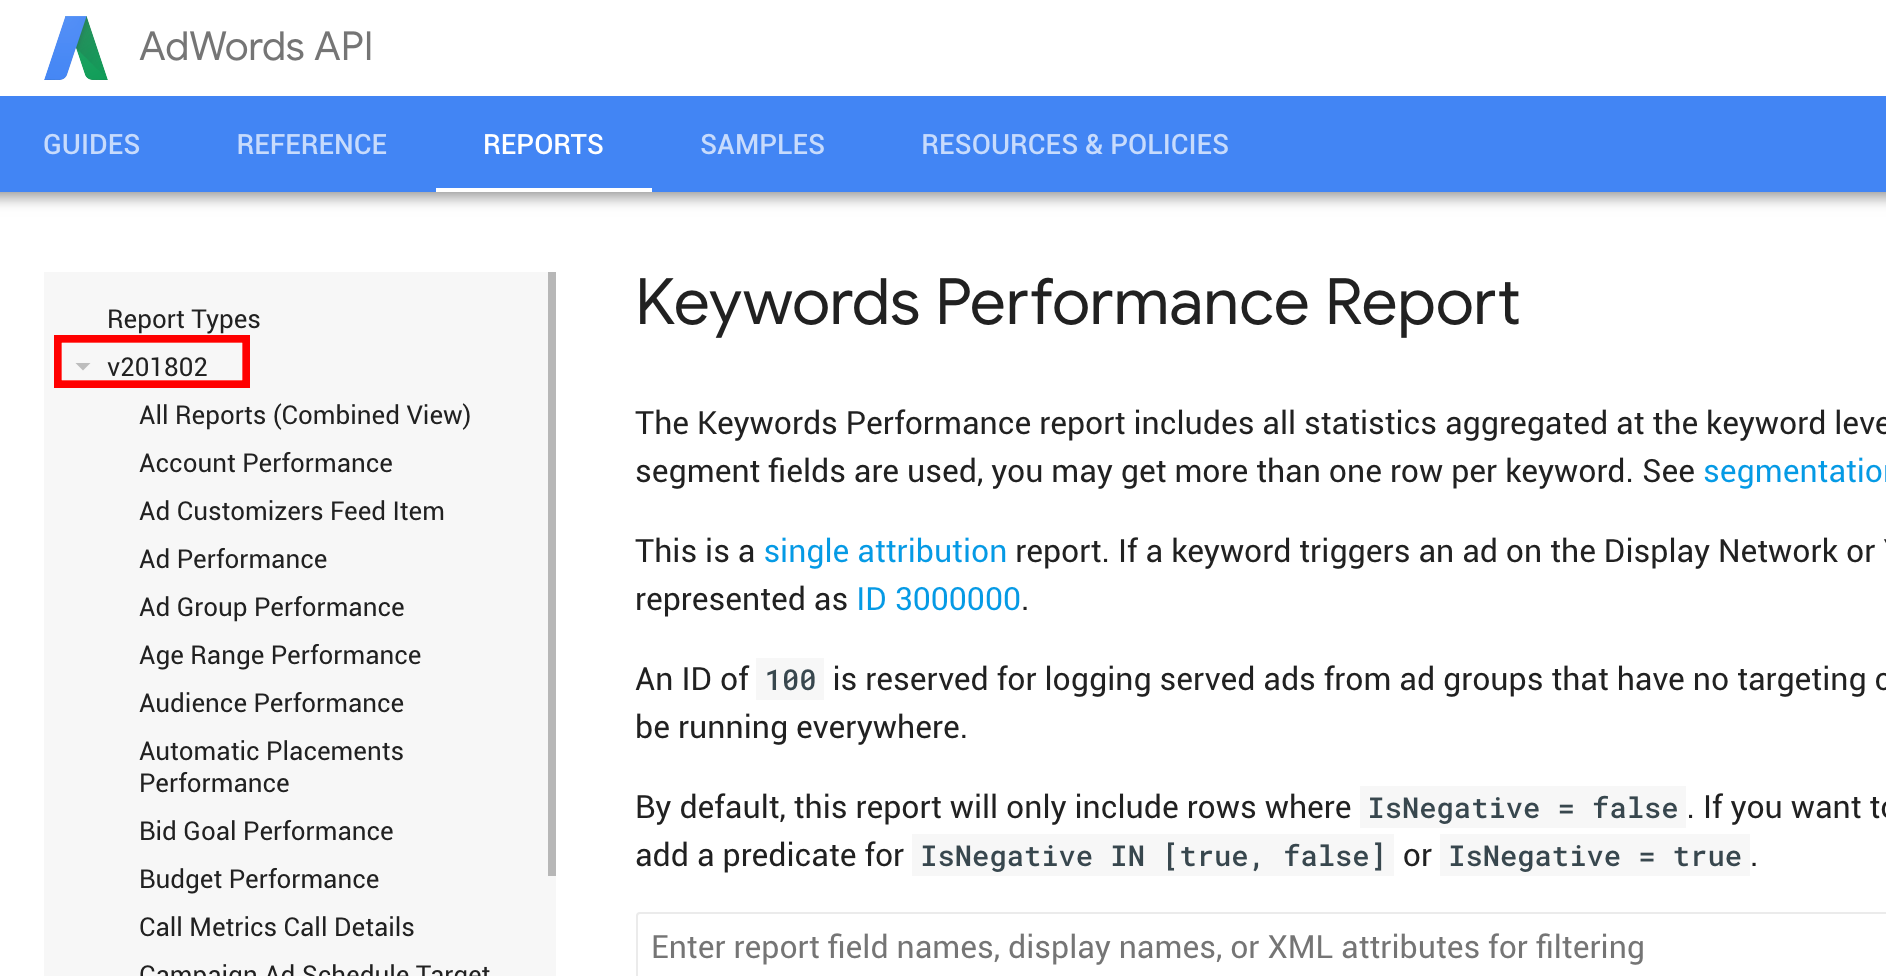 Get the Adwords API version from the rectangular box here